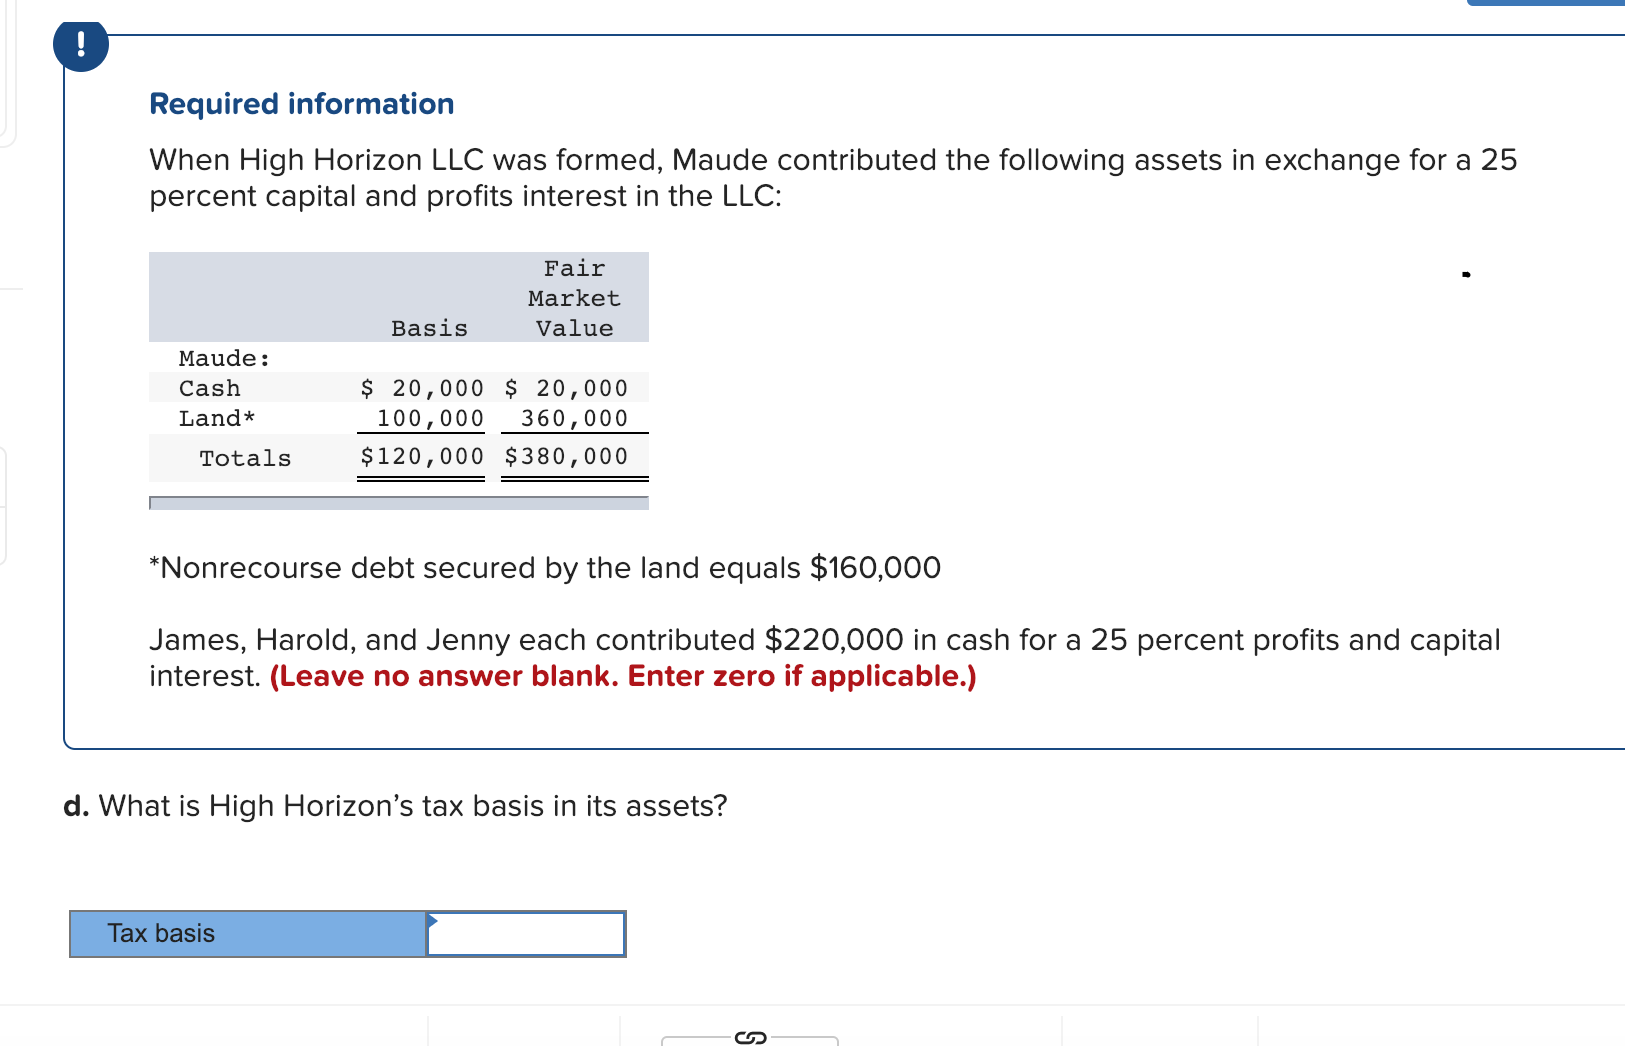 Required information When High Horizon LLC was formed, Maude contributed the following assets in exchange for a 25 percent capital and profits interest in the LLC: Fair Market Value Basis Maude: Cash Land* $ 20,000 20,000 100,000 360,000 Totals $120,000 $380,000 Nonrecourse debt secured by the land equals $160,000 James, Harold, and Jenny each contributed $220,000 in cash for a 25 percent profits and capital interest. (Leave no answer blank. Enter zero if applicable.) d. What is High Horizon's tax basis in its assets? Tax basis